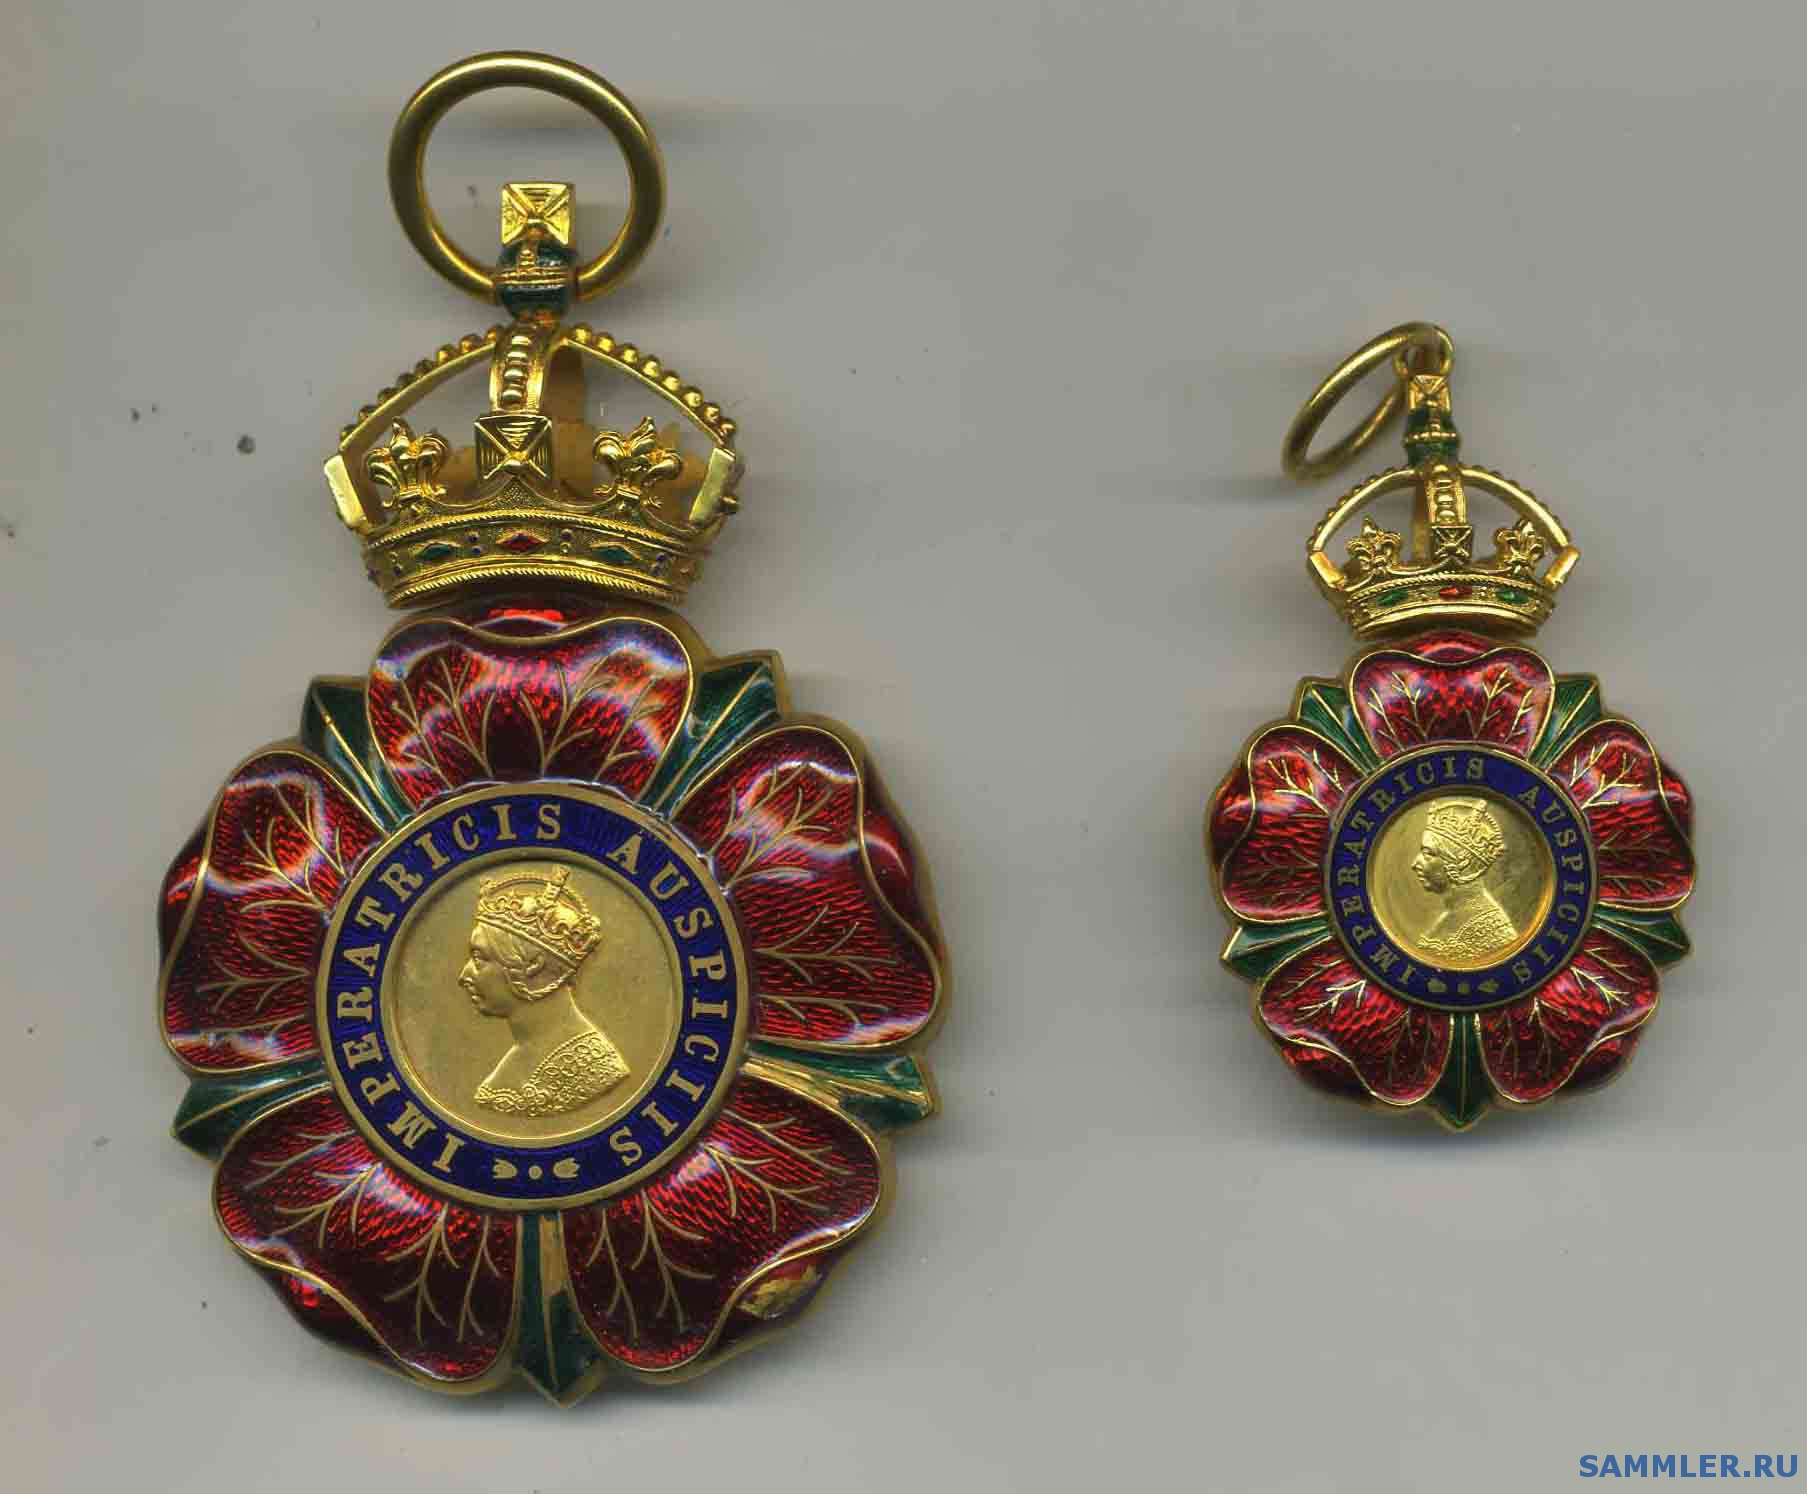 Knight_Grand_Commander__s_and_Companion__s_badges__Order_of_the_Indian_Empire.jpg